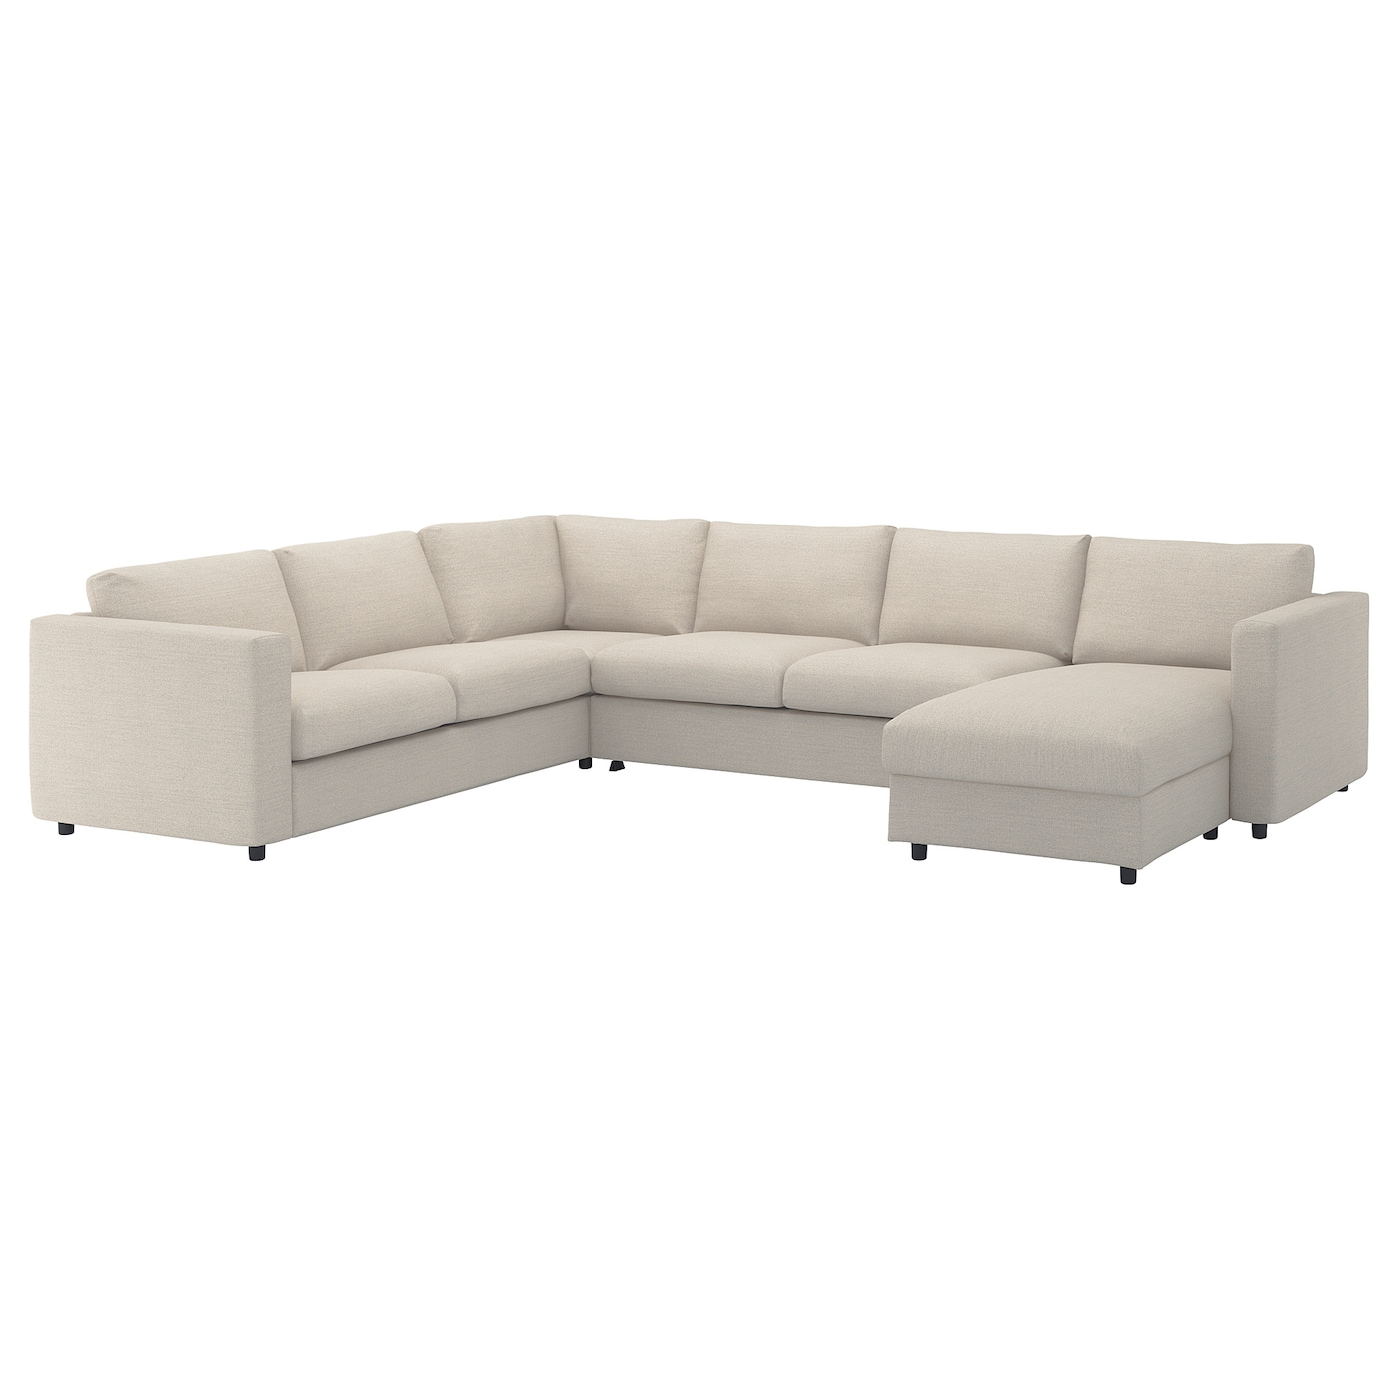 Groovy Vimle Corner Sofa Bed 5 Seat With Chaise Longue Gunnared Beige Caraccident5 Cool Chair Designs And Ideas Caraccident5Info